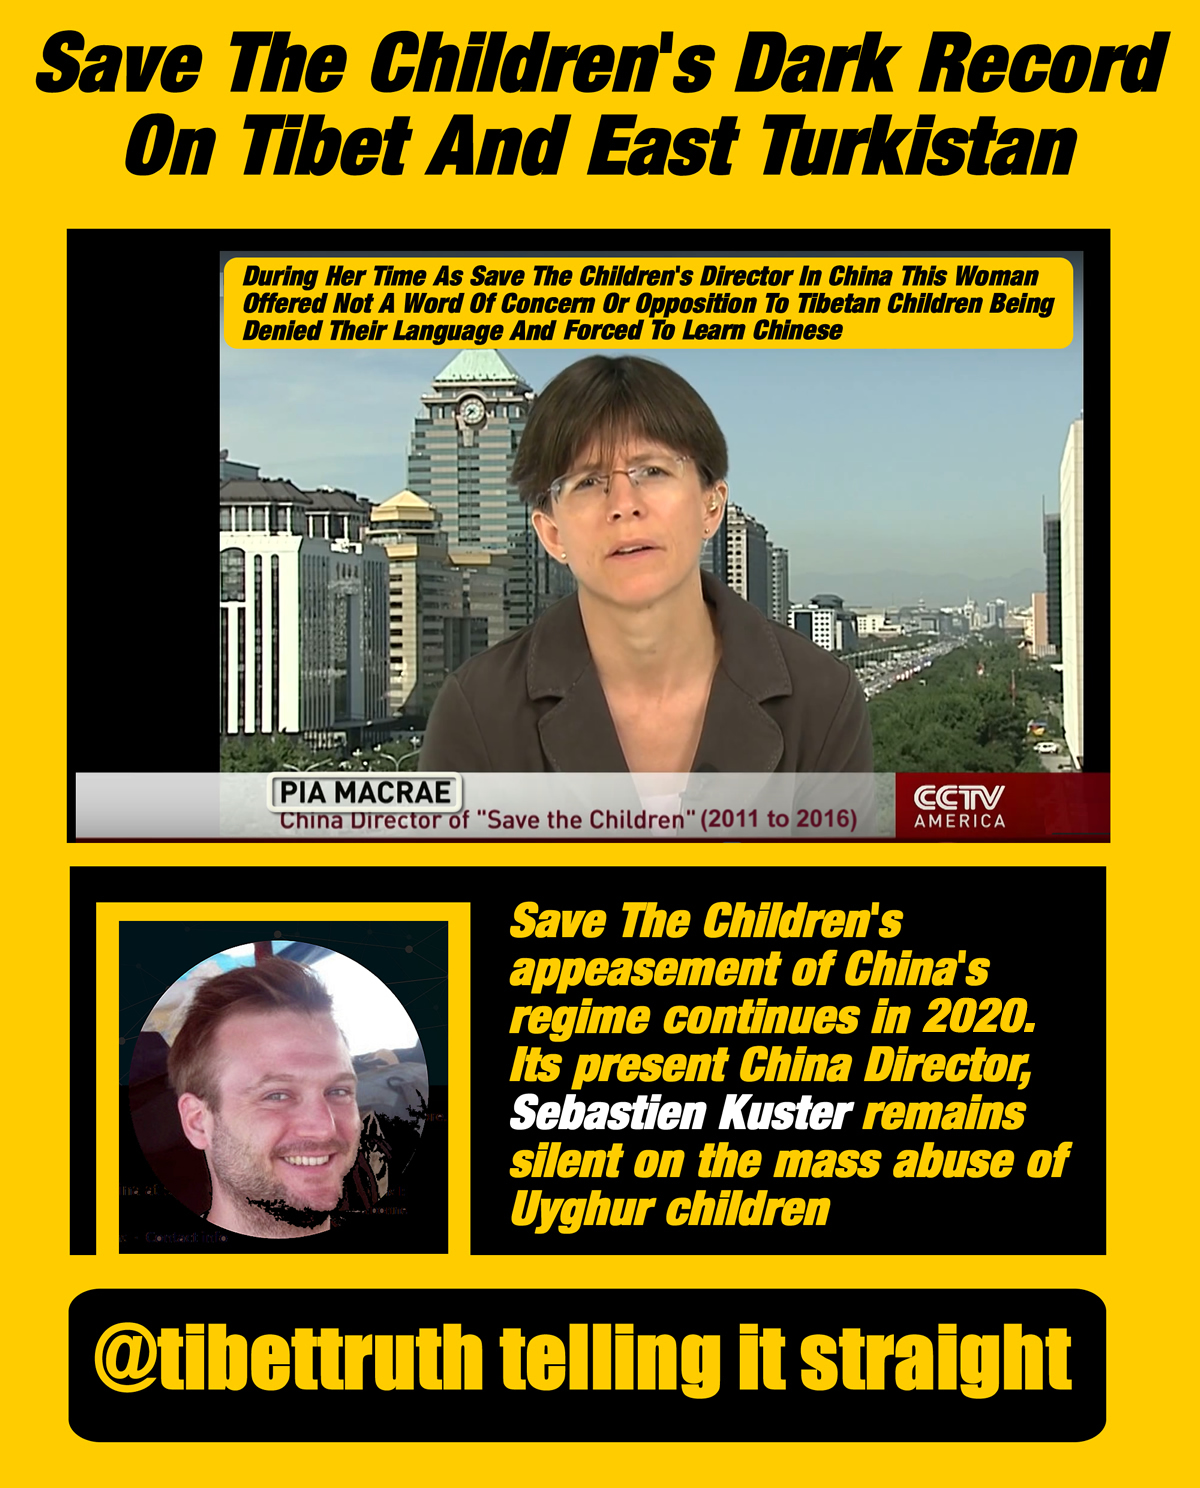 Time Save The Children Broke Its Silence On China's Mass Abuse Of Uyghur Children